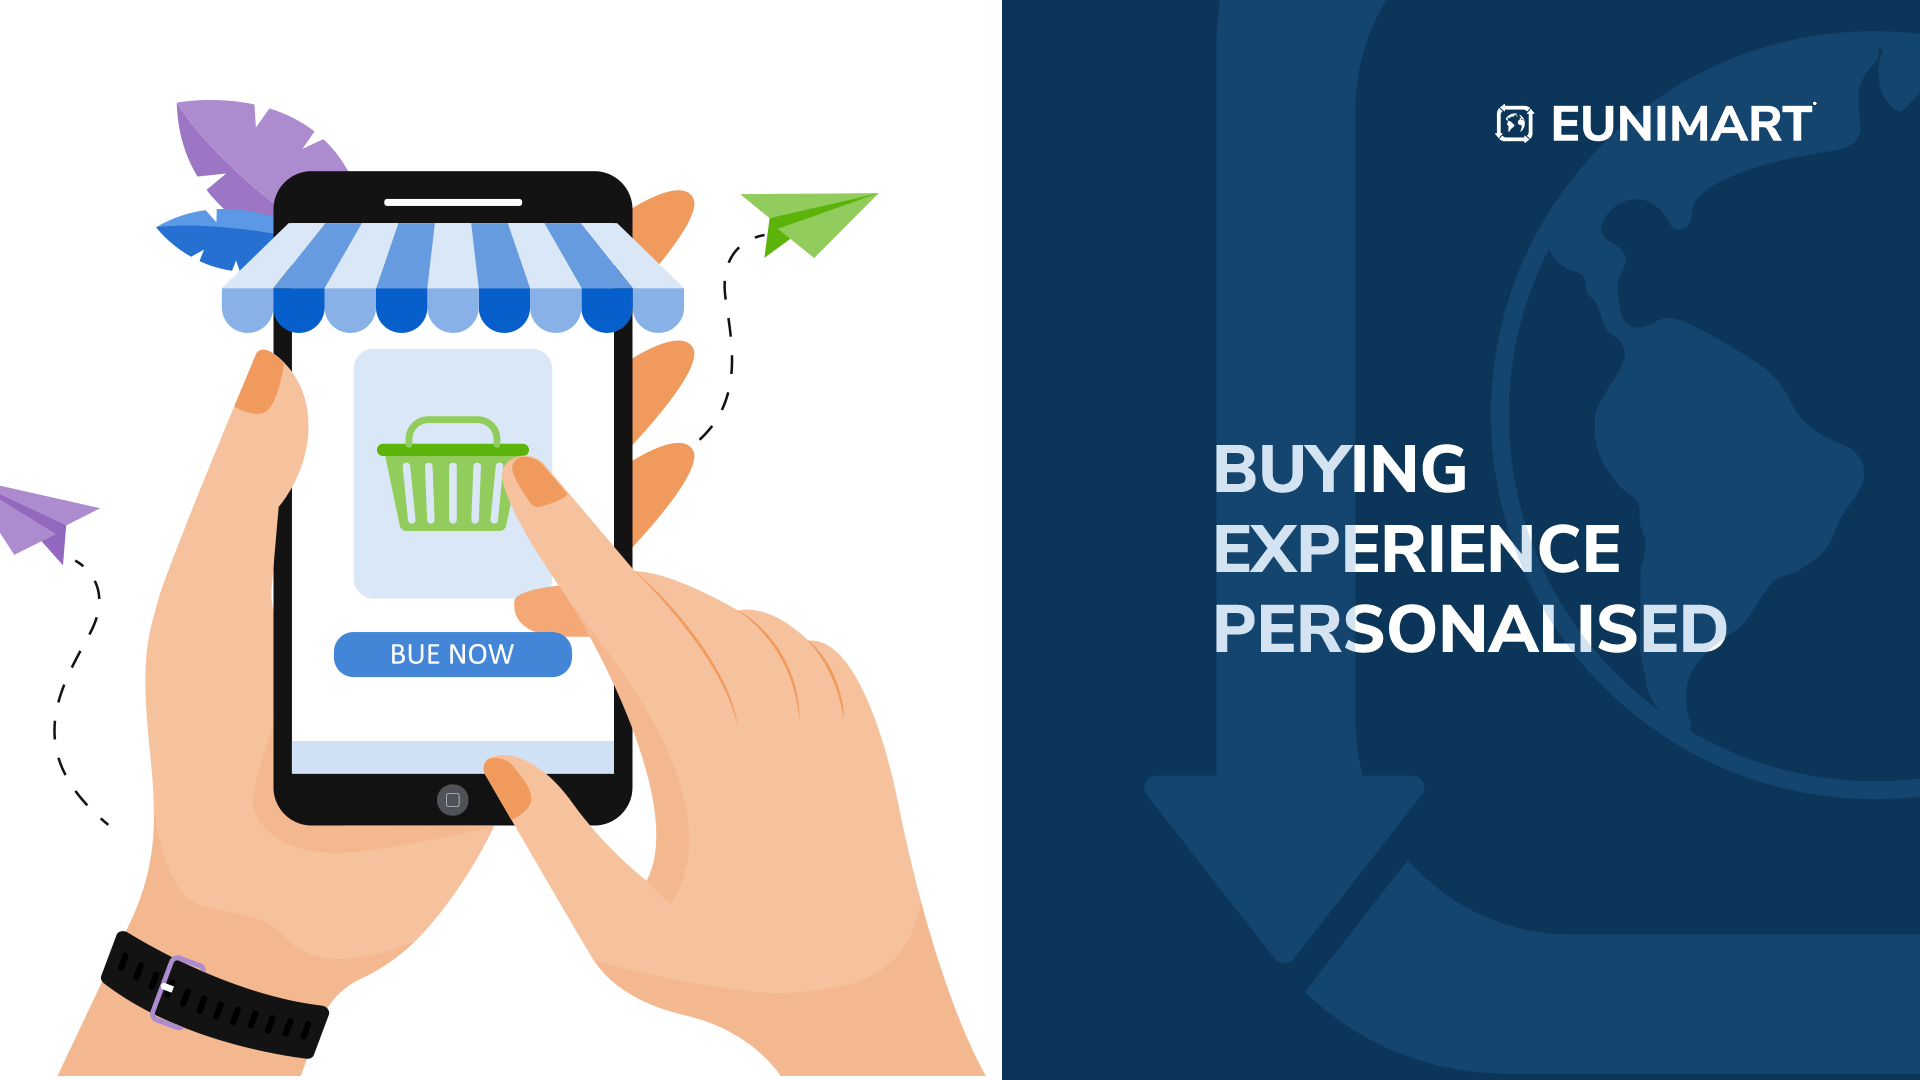 Buying Experience Personalised